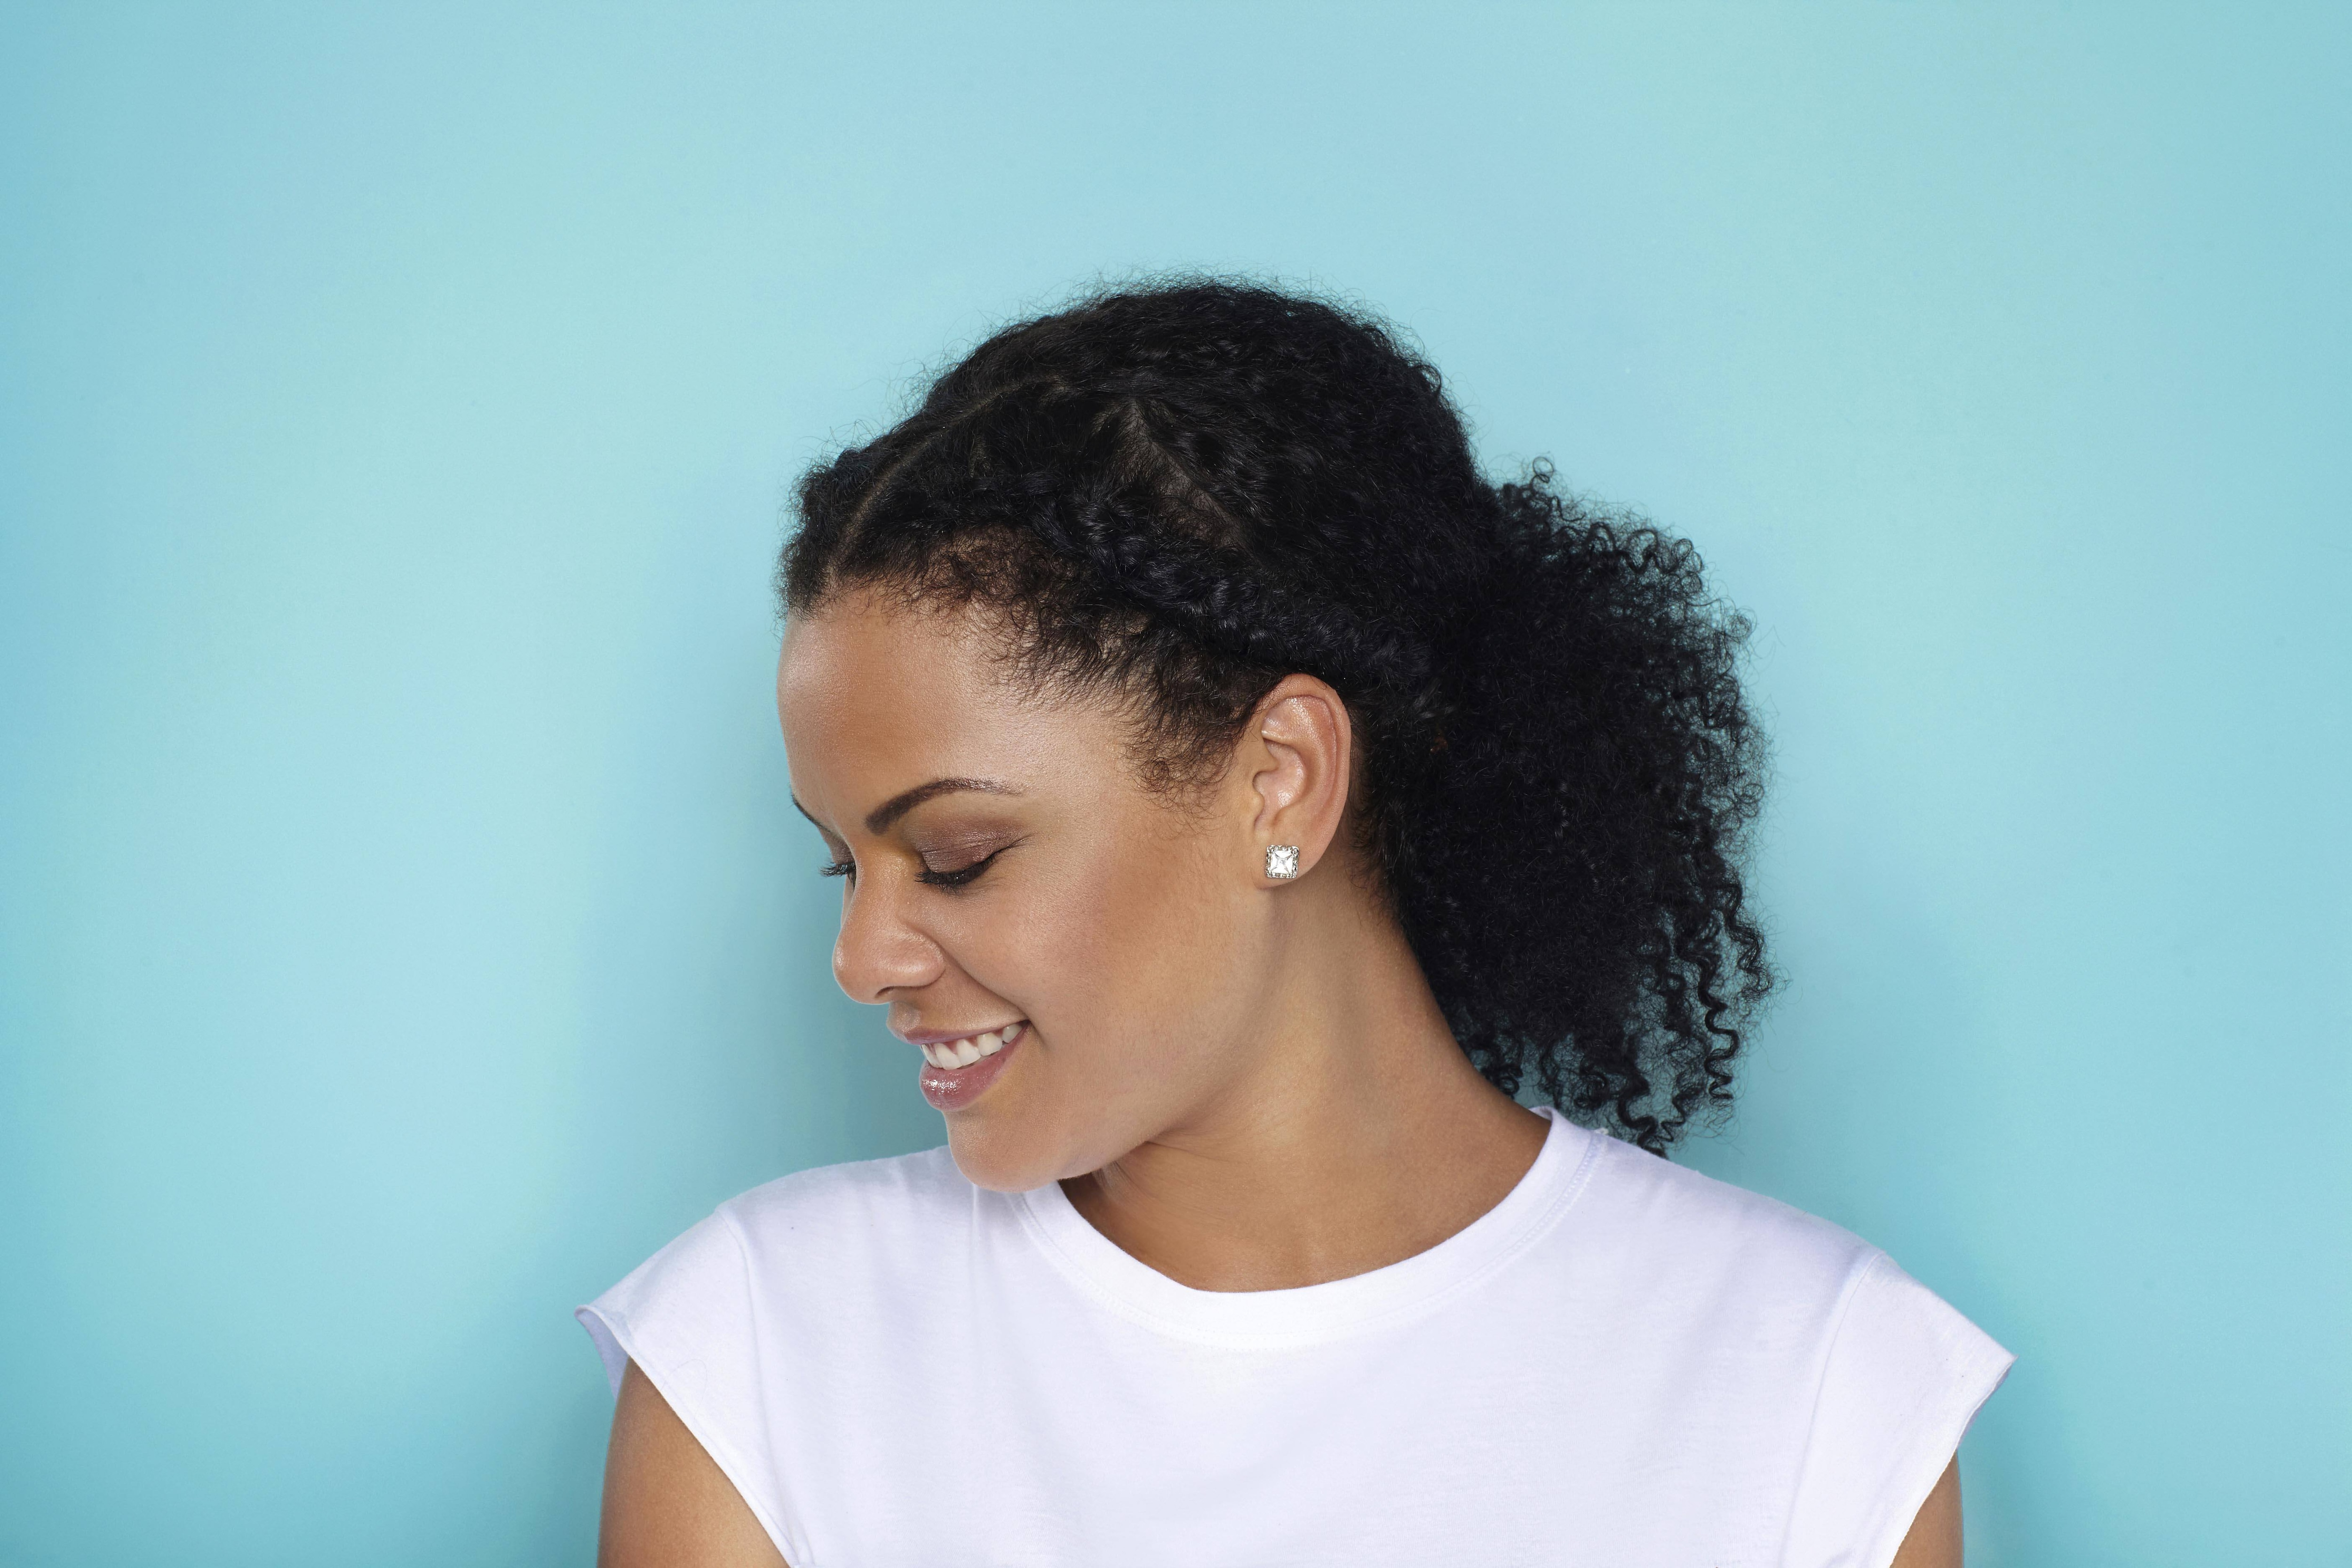 Curly hair hairstyles: side profile of woman with naturally curly hair in ponytail with braids at the front of the hair standing against a light blue backdrop wearing a white tshirt.